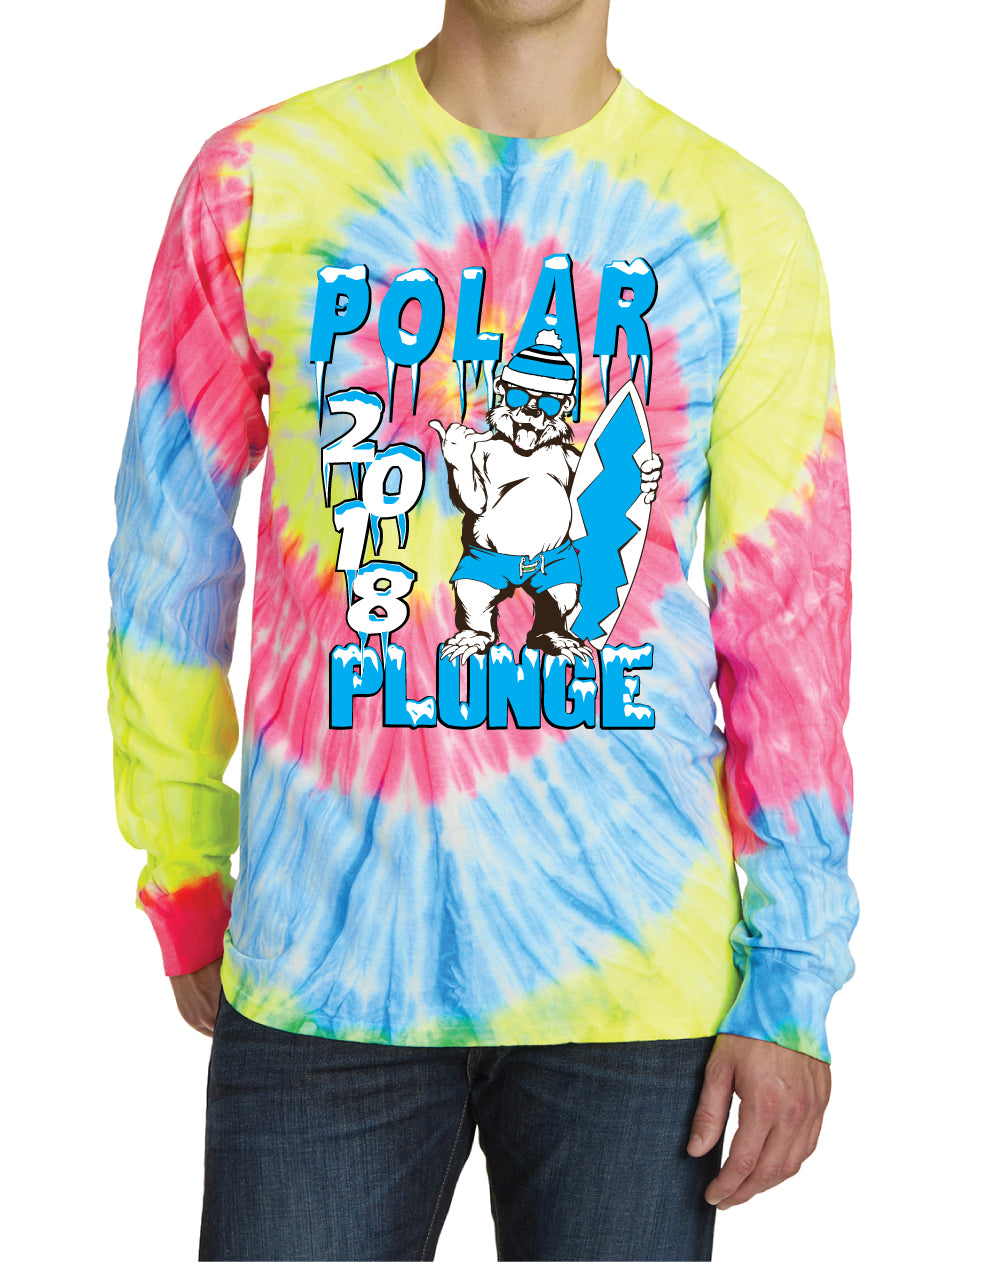 2018 POLAR PLUNGE LONG-SLEEVE TROPICAL TIE-DYE TEE